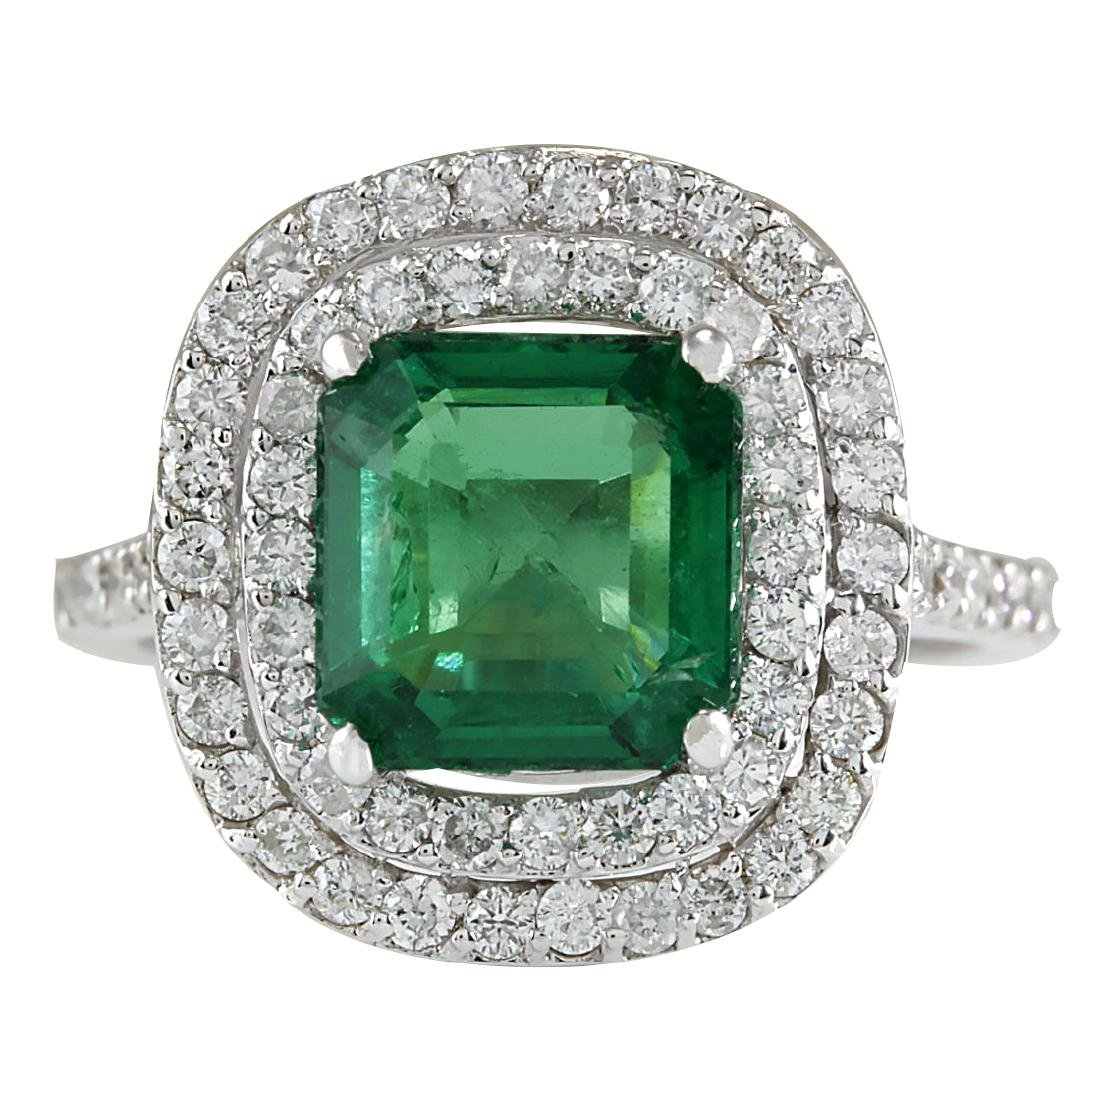 3.62CTW Natural Emerald And Diamond Ring In 14K White